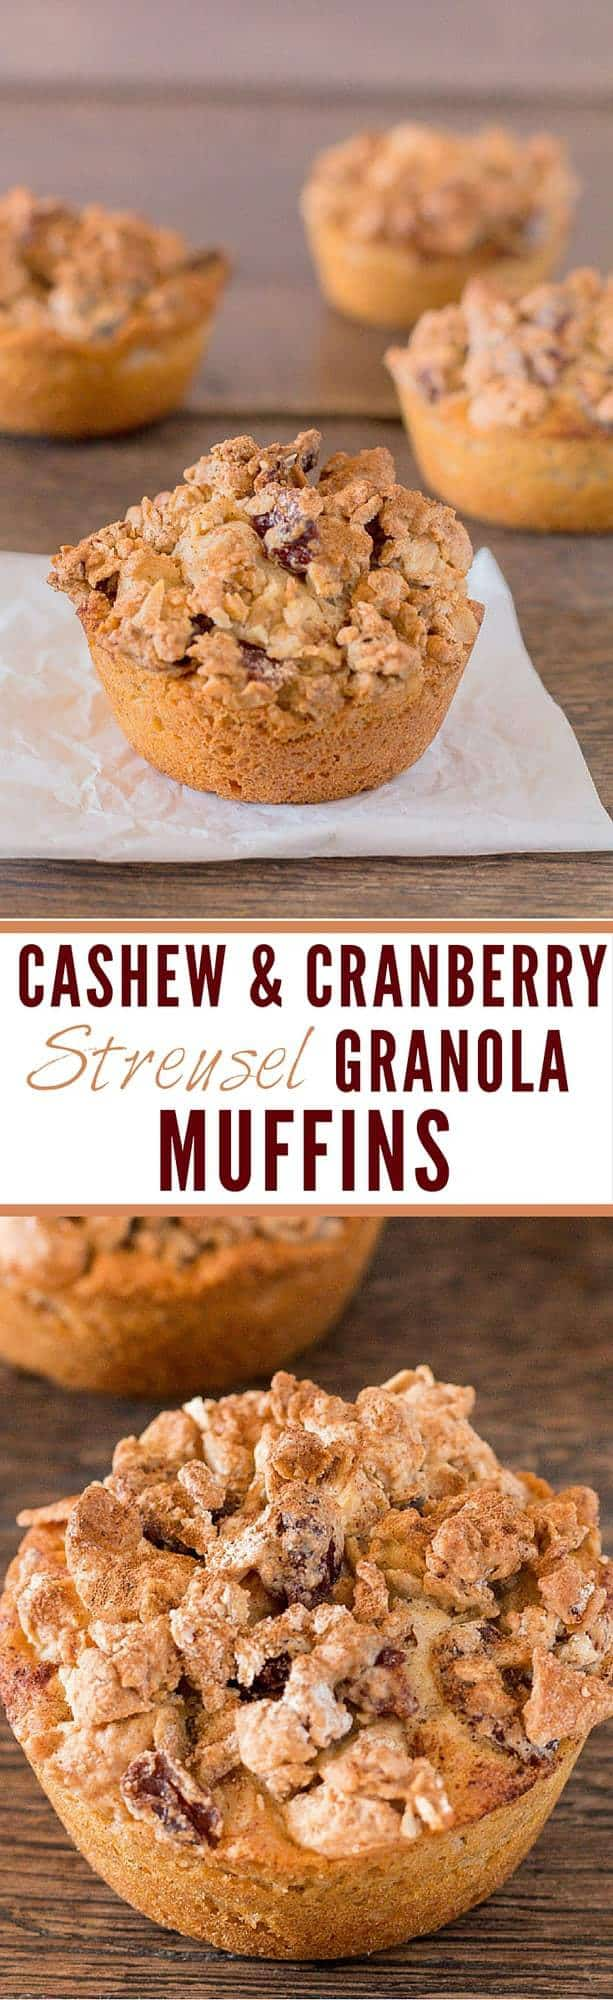 Cashew and Cranberry Streusel Granola Muffins | Recipes From A Pantry